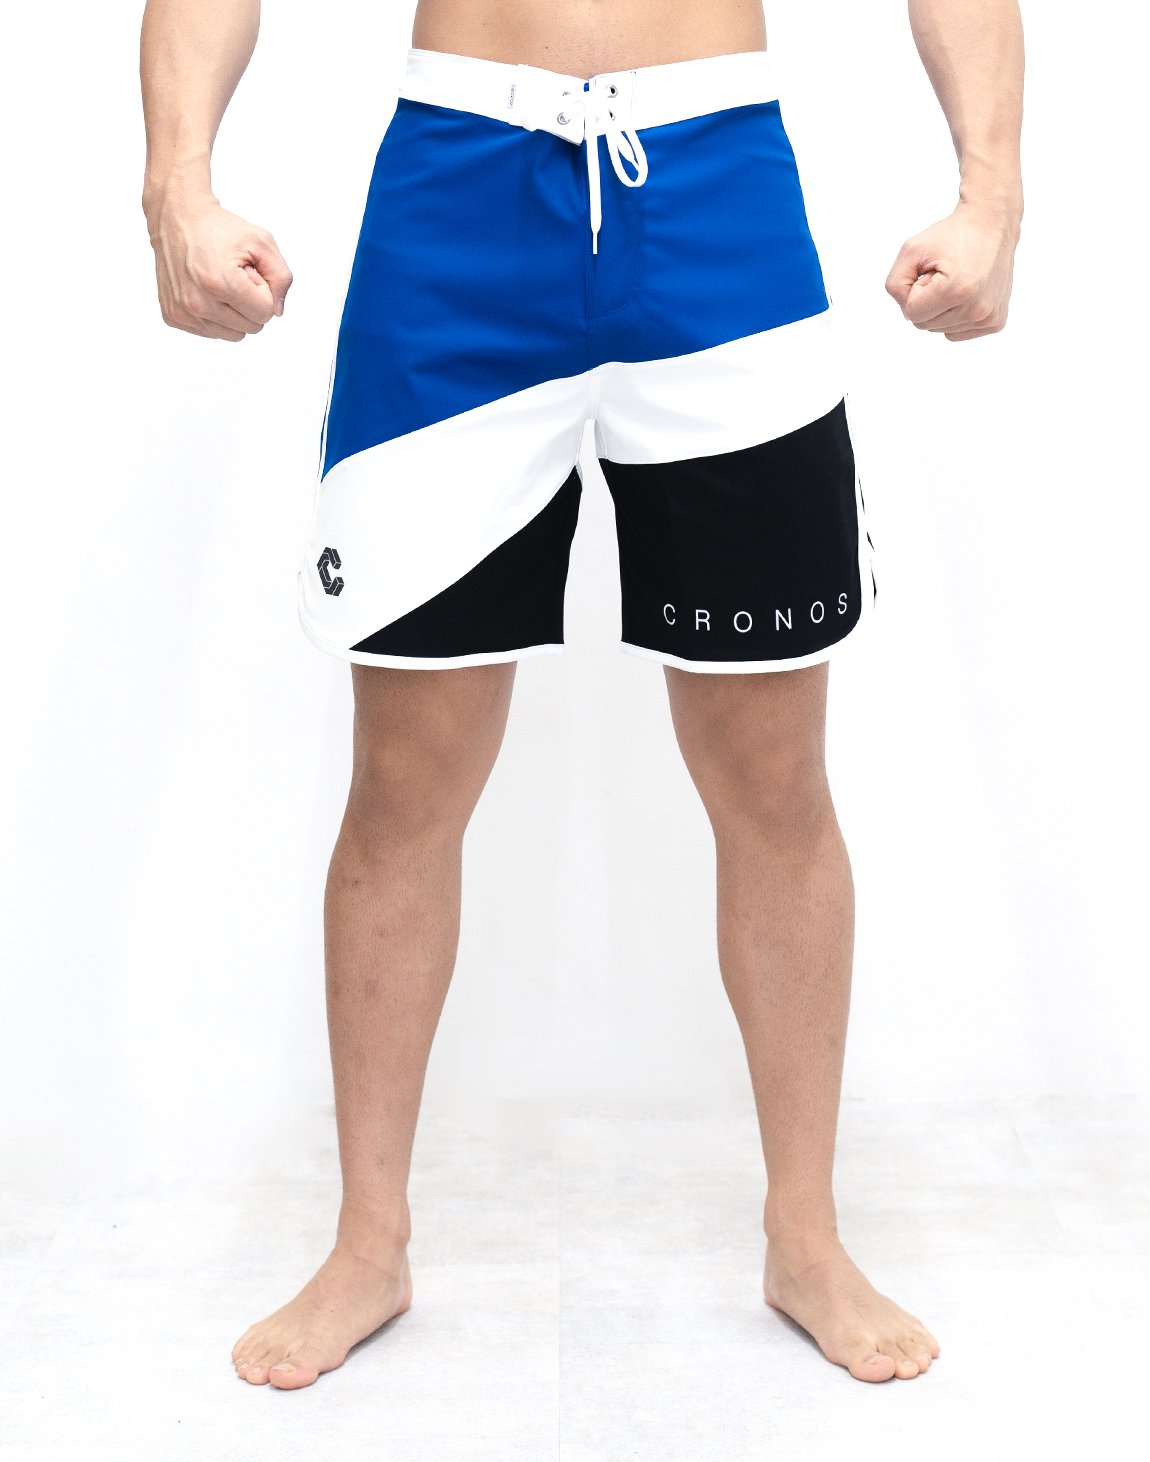 <img class='new_mark_img1' src='https://img.shop-pro.jp/img/new/icons1.gif' style='border:none;display:inline;margin:0px;padding:0px;width:auto;' />CRONOS THREE COLORS BOARD SHORTS【BLUE】